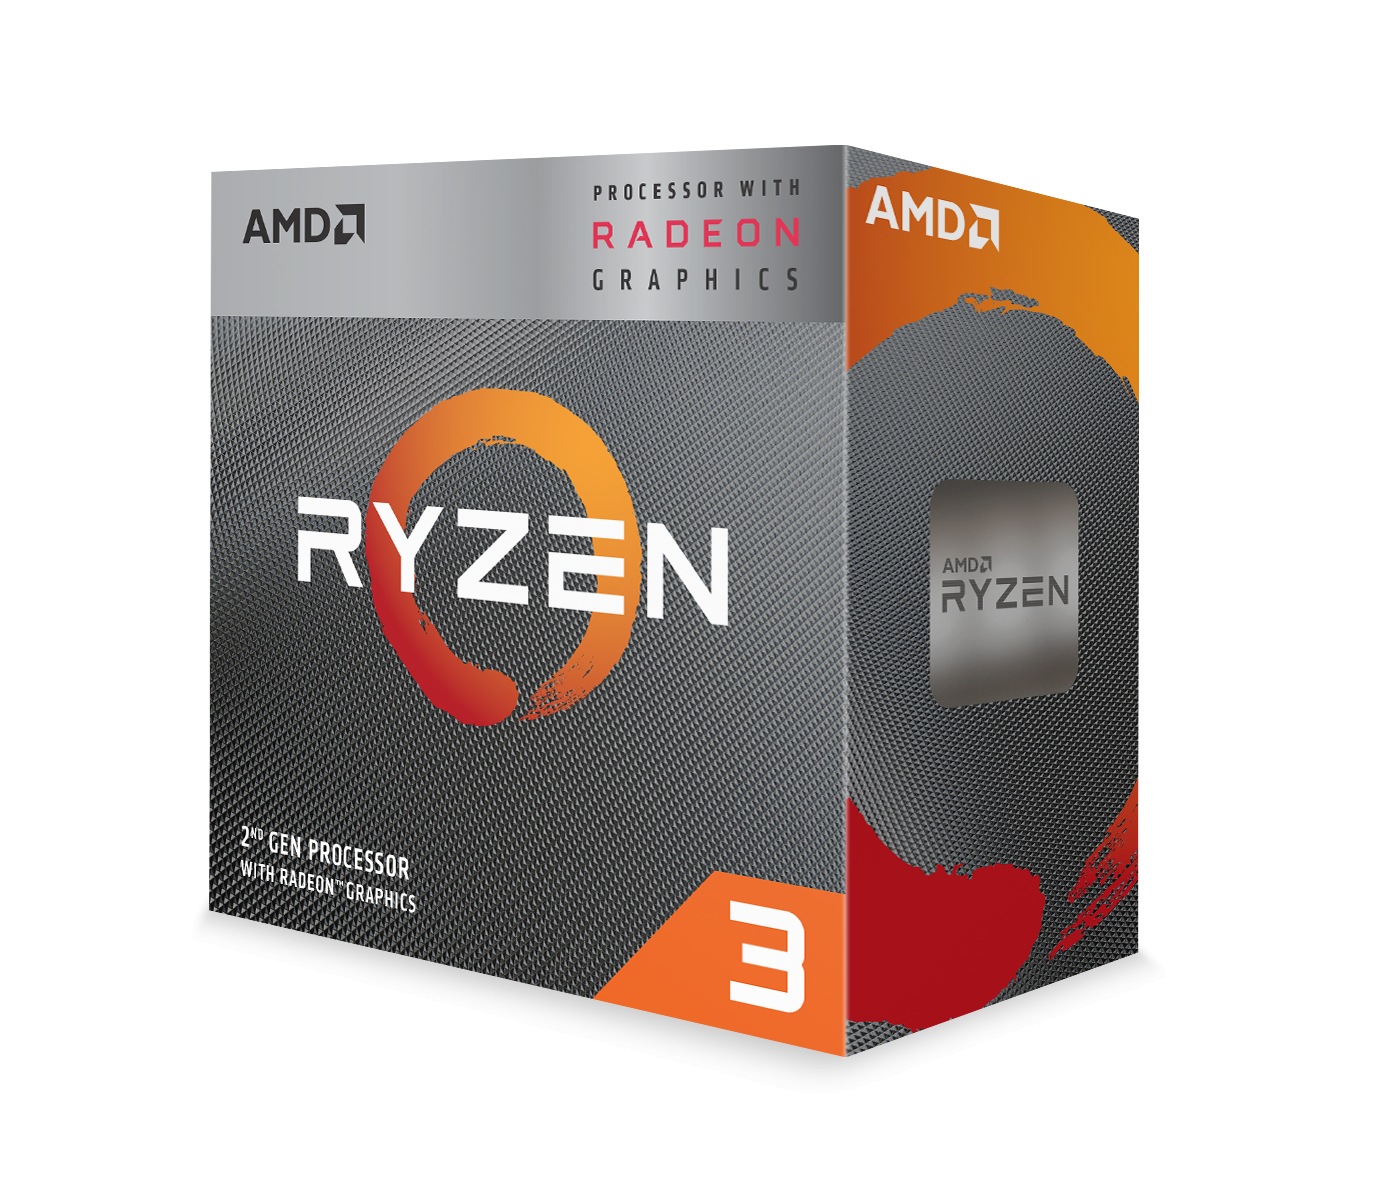 Процесор AMD RYZEN 3 3200G 4-Core 3.6 GHz (4.0 GHz Turbo) 6MB/65W/AM4/BOX-2